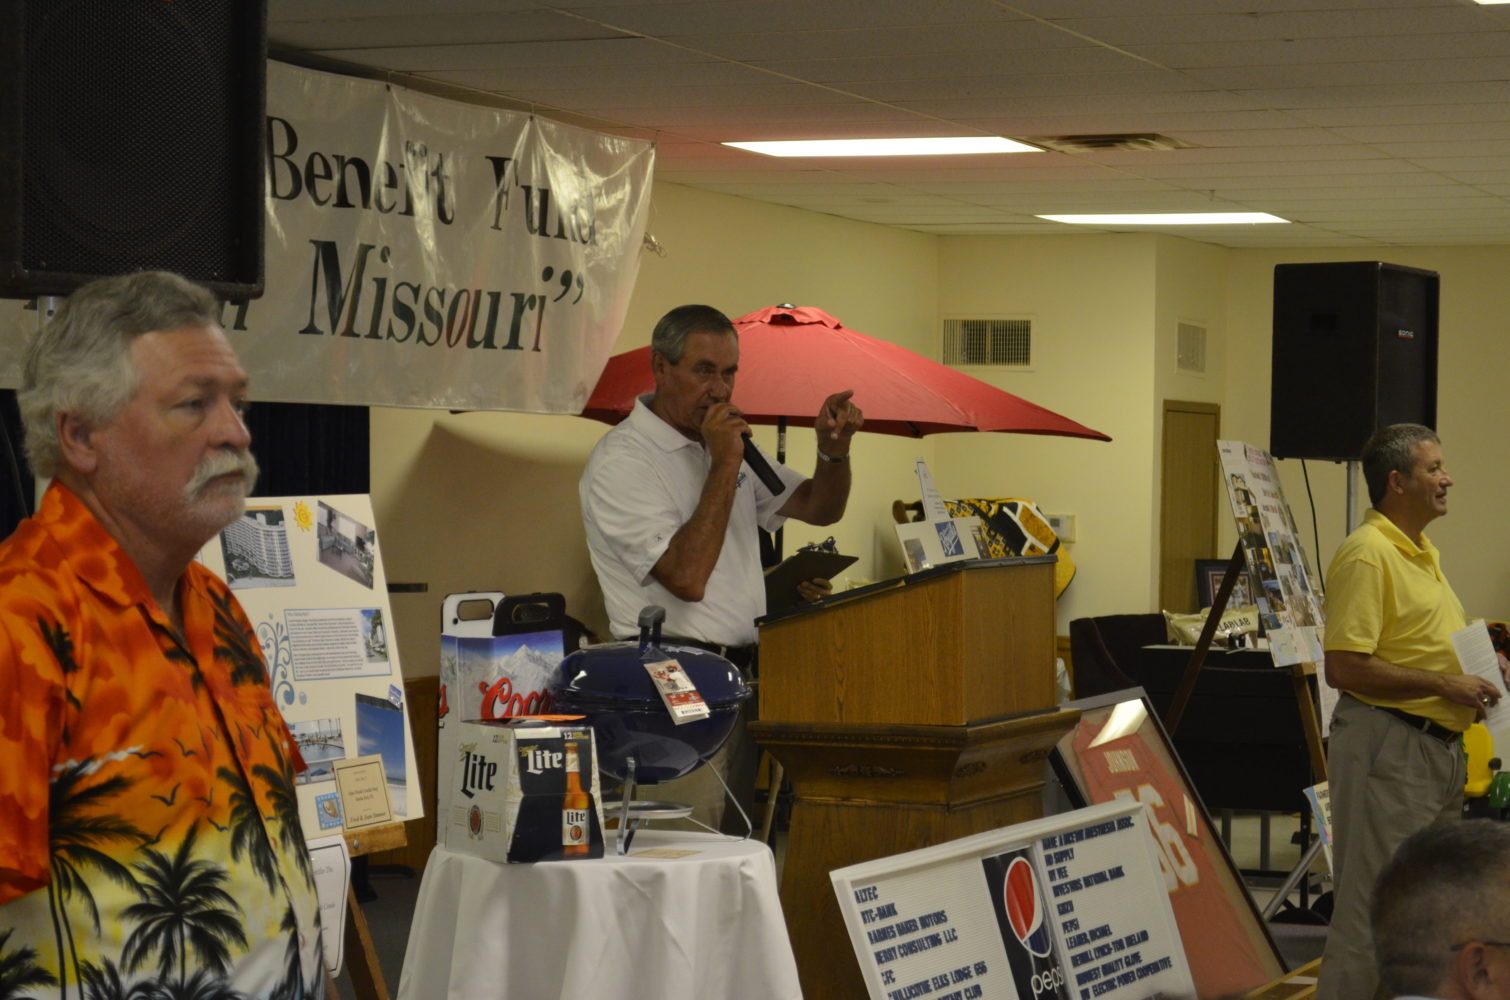 Area Youth Benefit Fund raises more than $40,000